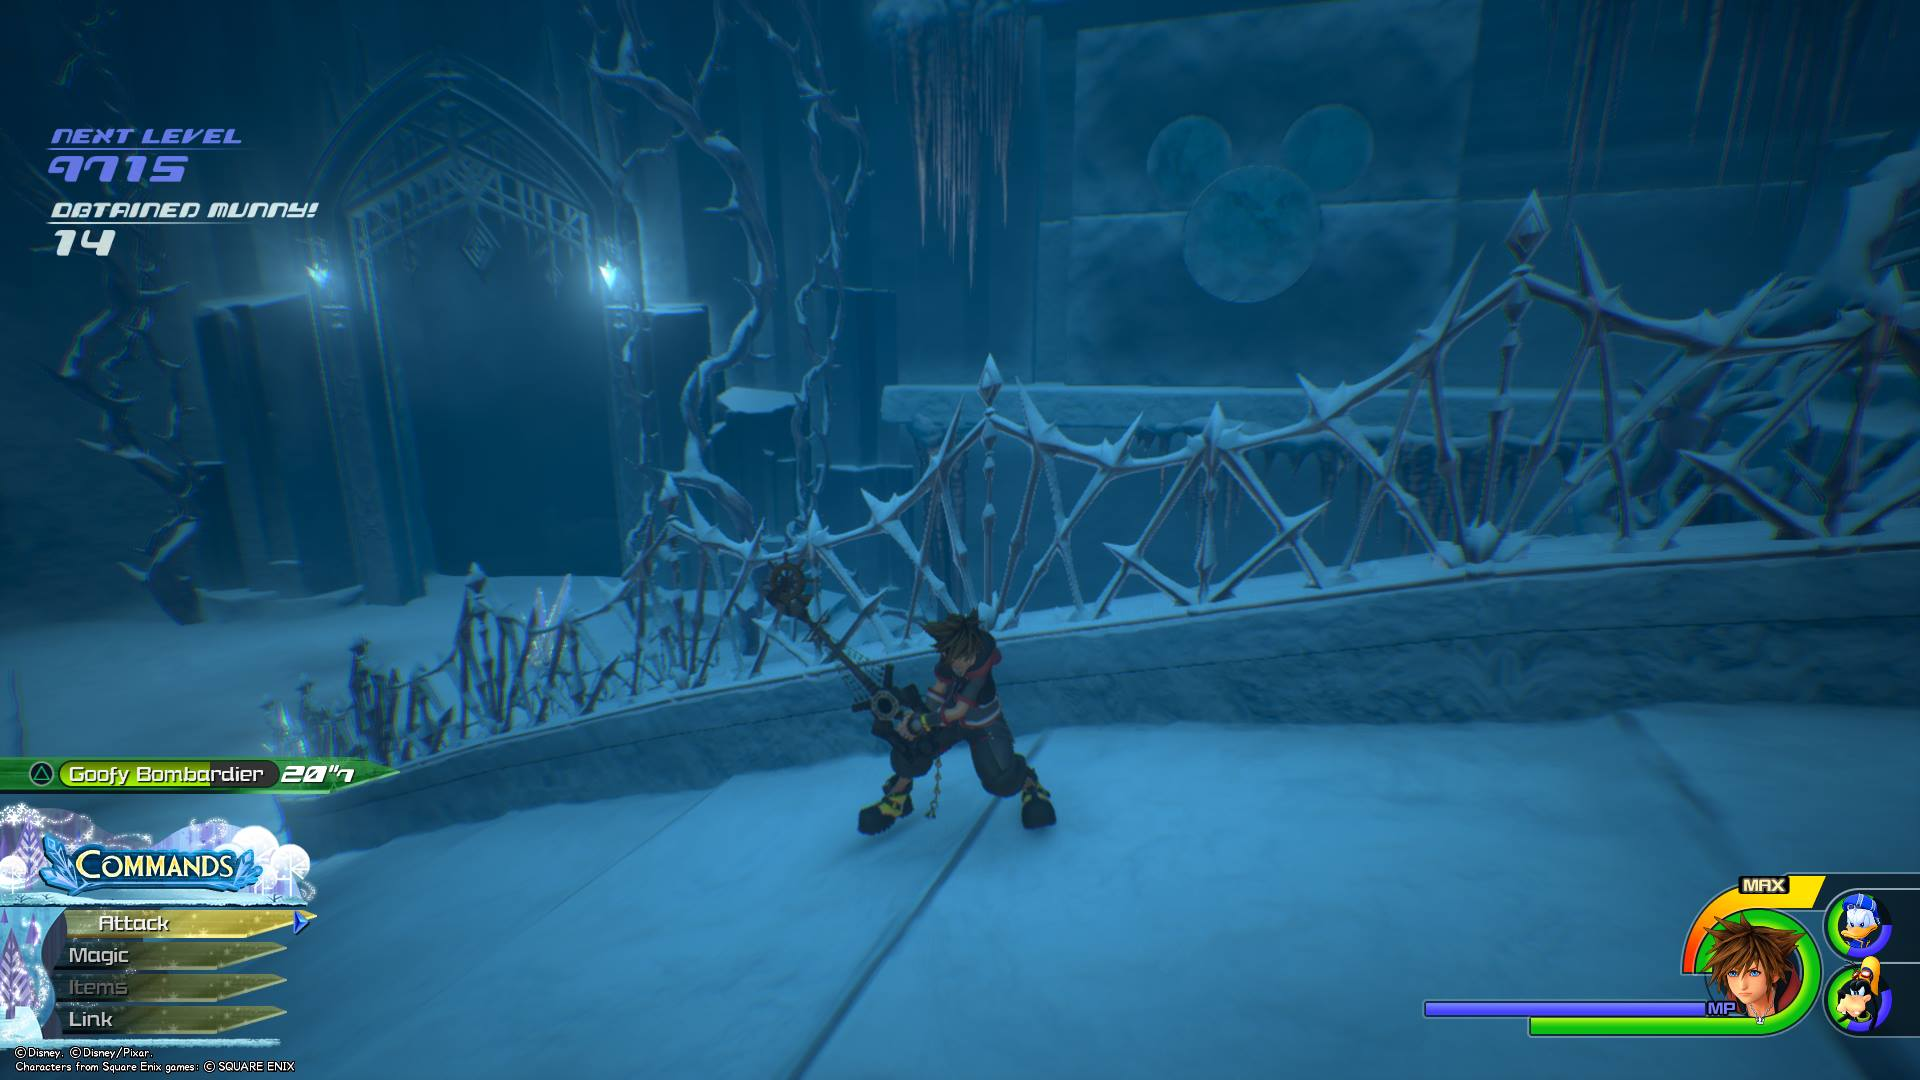 You can find the tenth Lucky Emblem in the Arendelle world of Kingdom Hearts 3 by ascending to the Middle Tier of the Labyrinth from the Lower Tier. Before you cross the bridge, look to your left. There, you should be able to see a large Lucky Emblem imprinted on the wall.